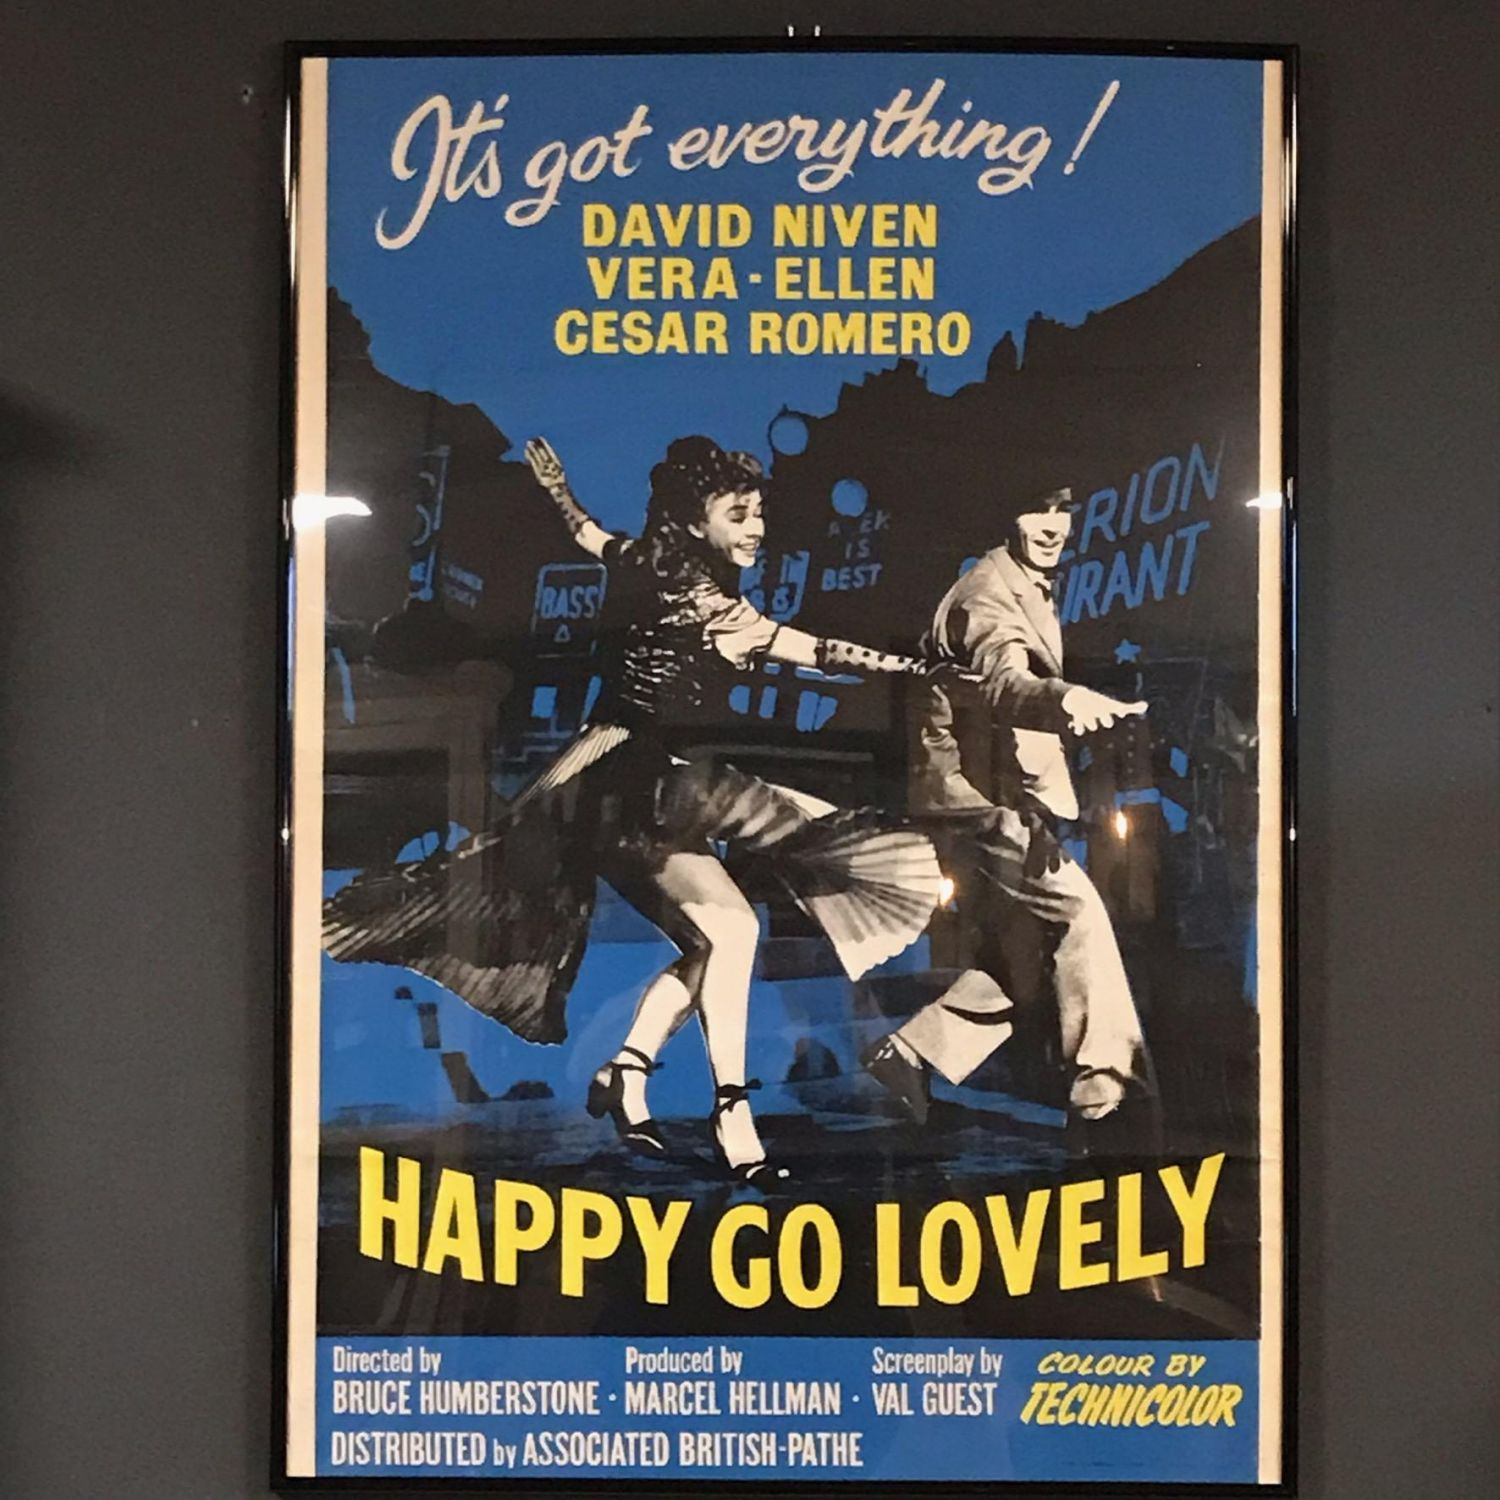 Original Print Ad 1951 Movie Happy Go Lovely David Niven Technicolor Romero Collectibles